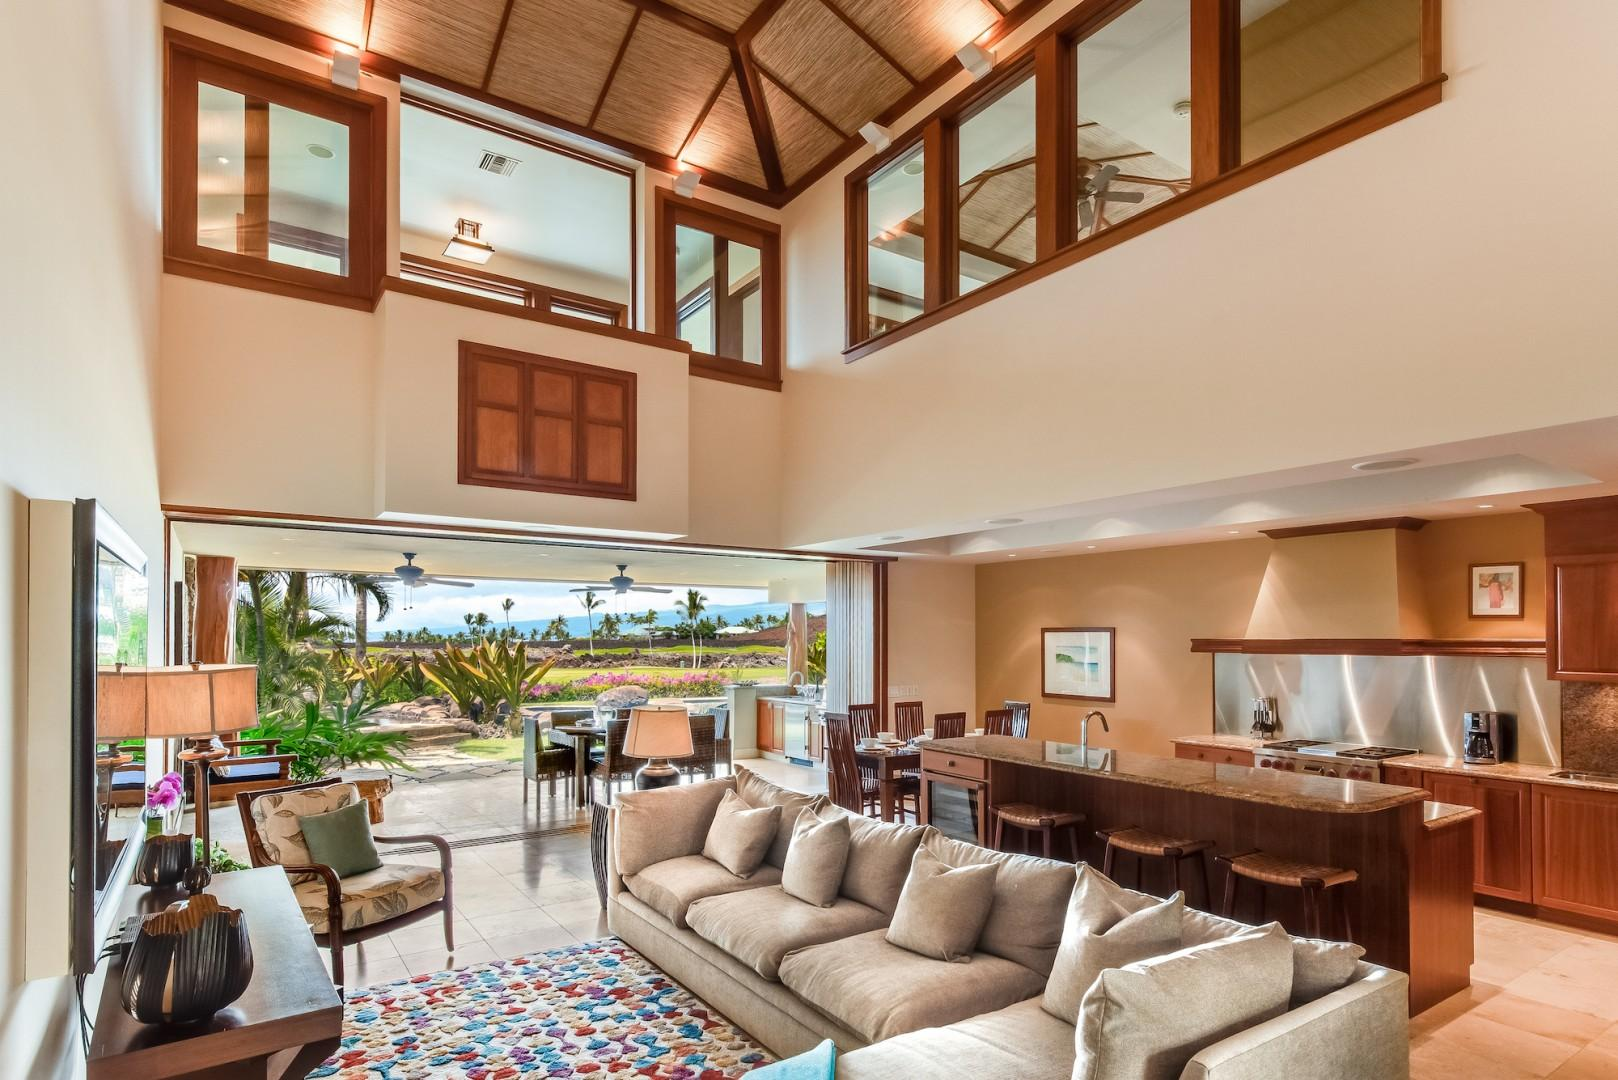 Spacious & Elegantly Appointed Living Room w/ Vaulted Ceilings & Electronic Pocket Doors that Open to Lanai and Pool Area